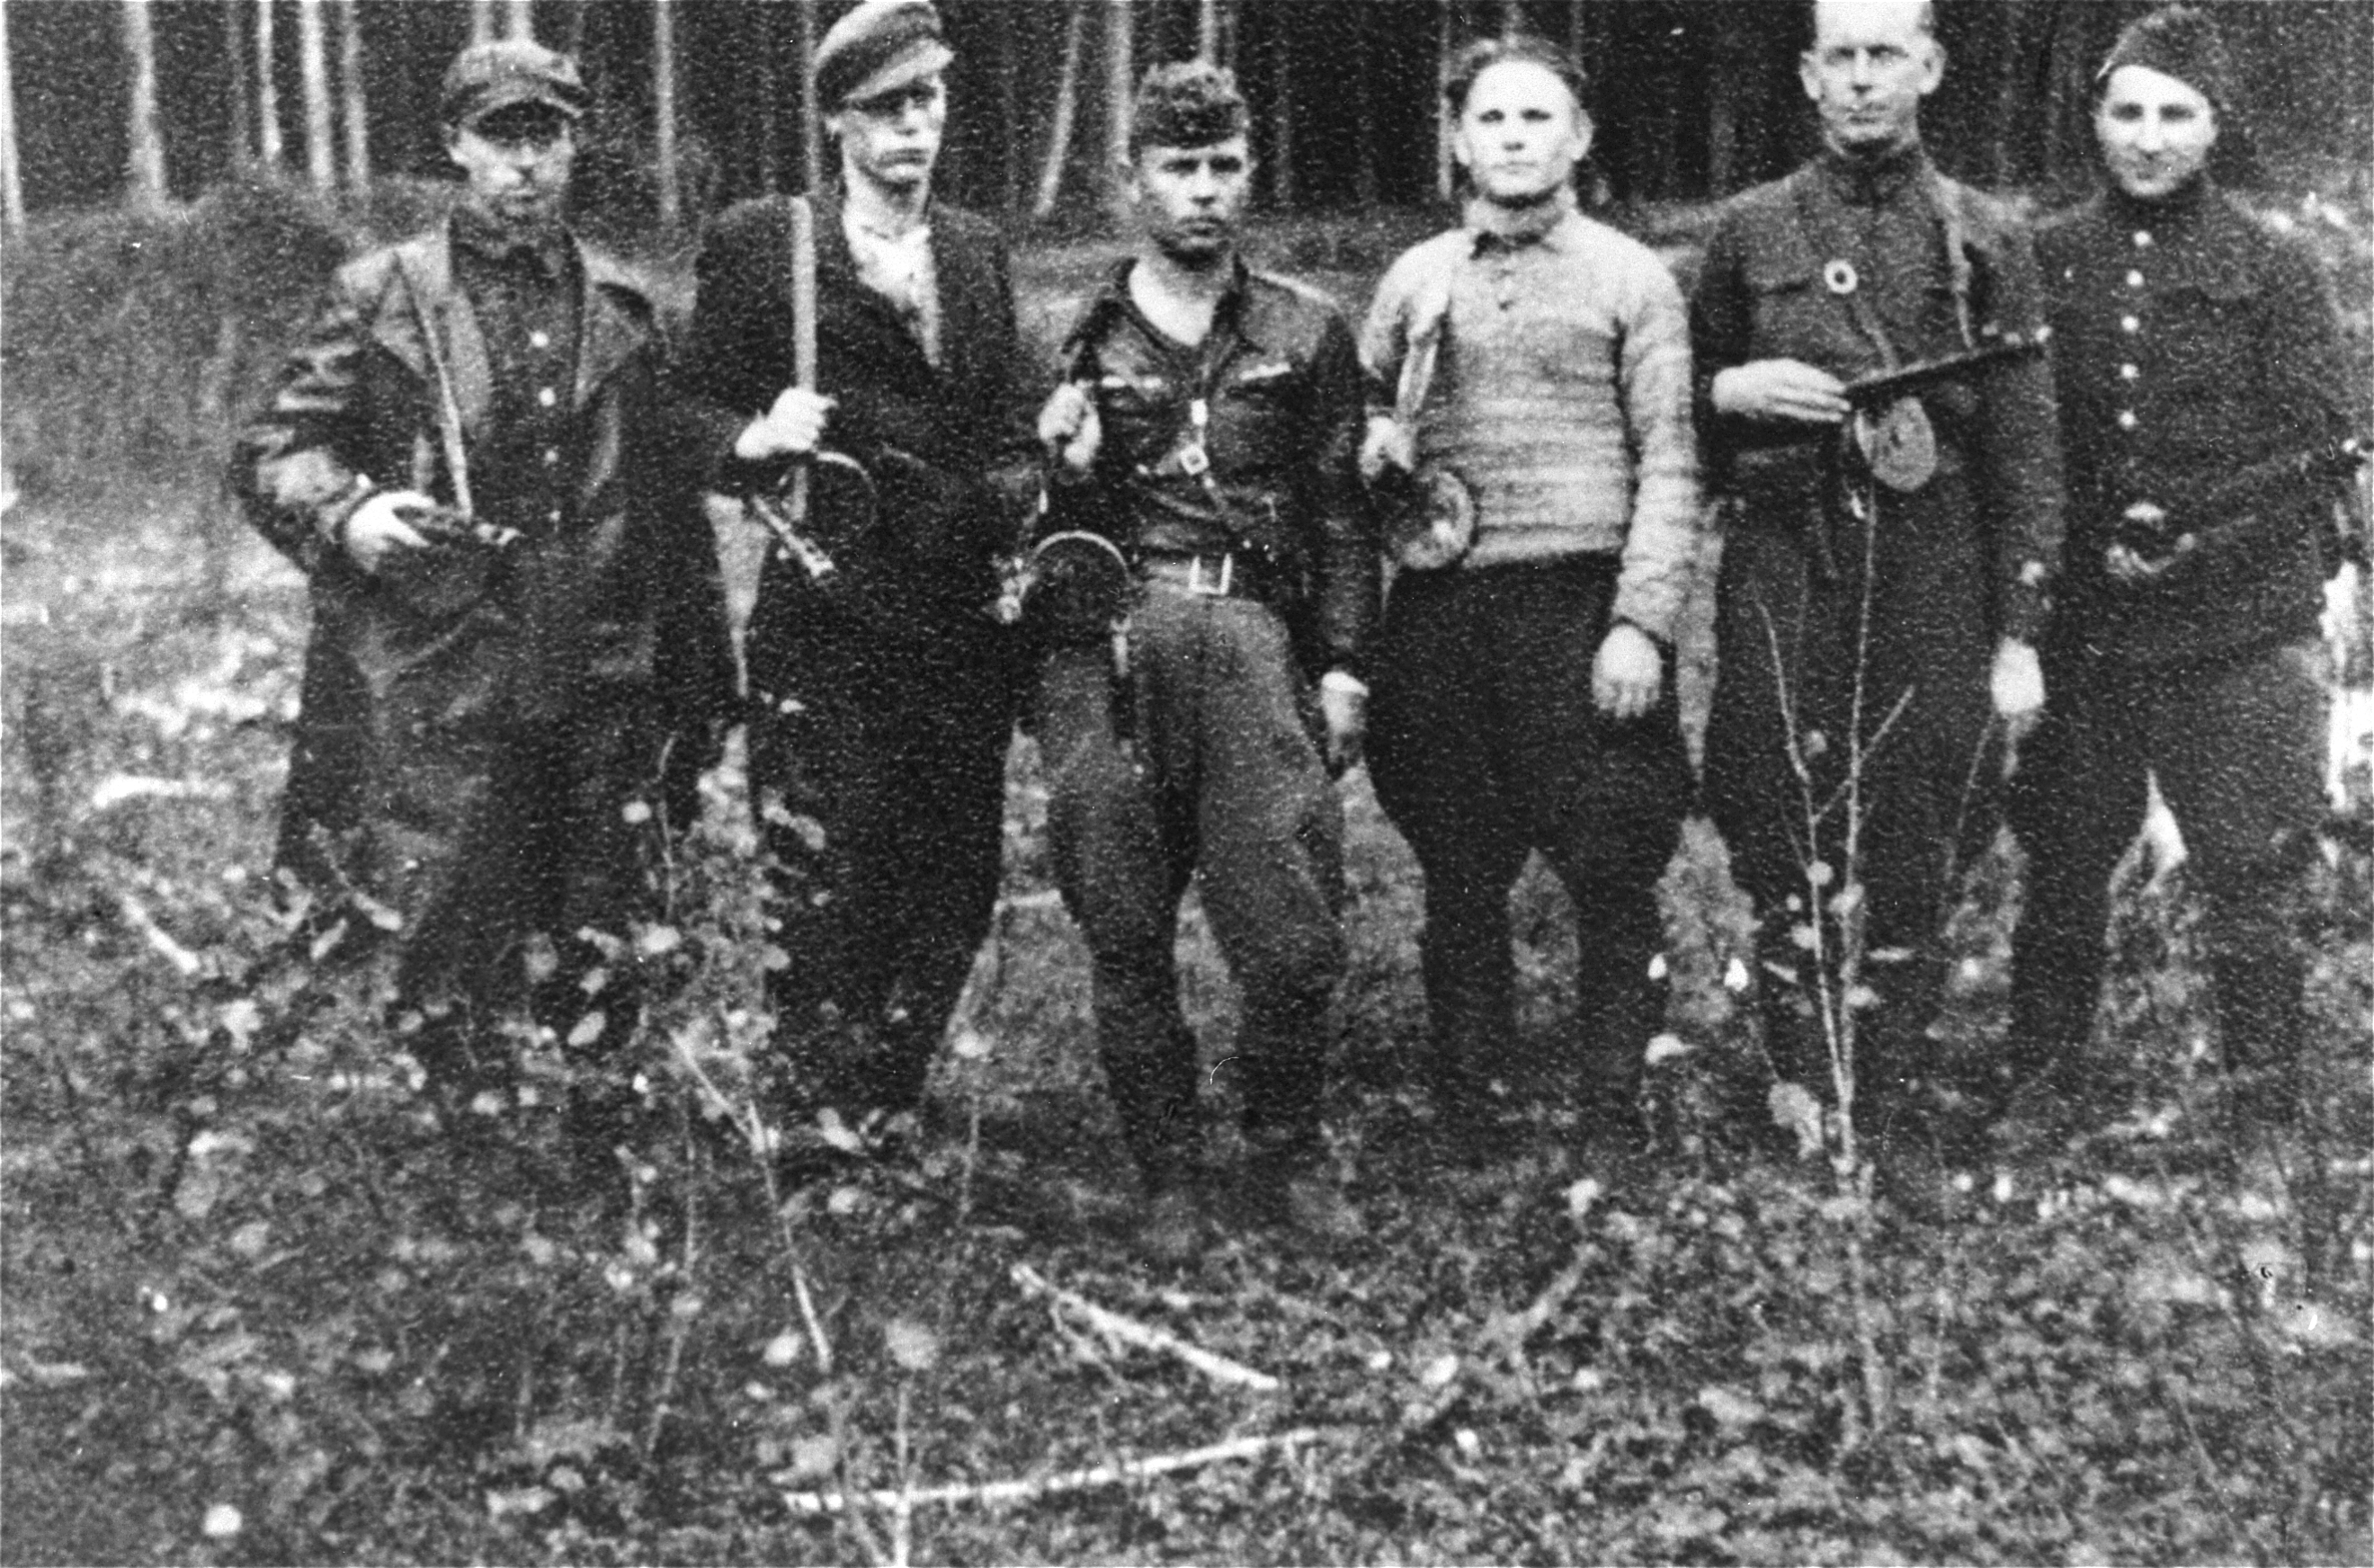 A group of Jewish partisans in the Rudnicki Forest, near Vilnius, sometime between 1942 and 1944. Credit: United States Holocaust Memorial Museum